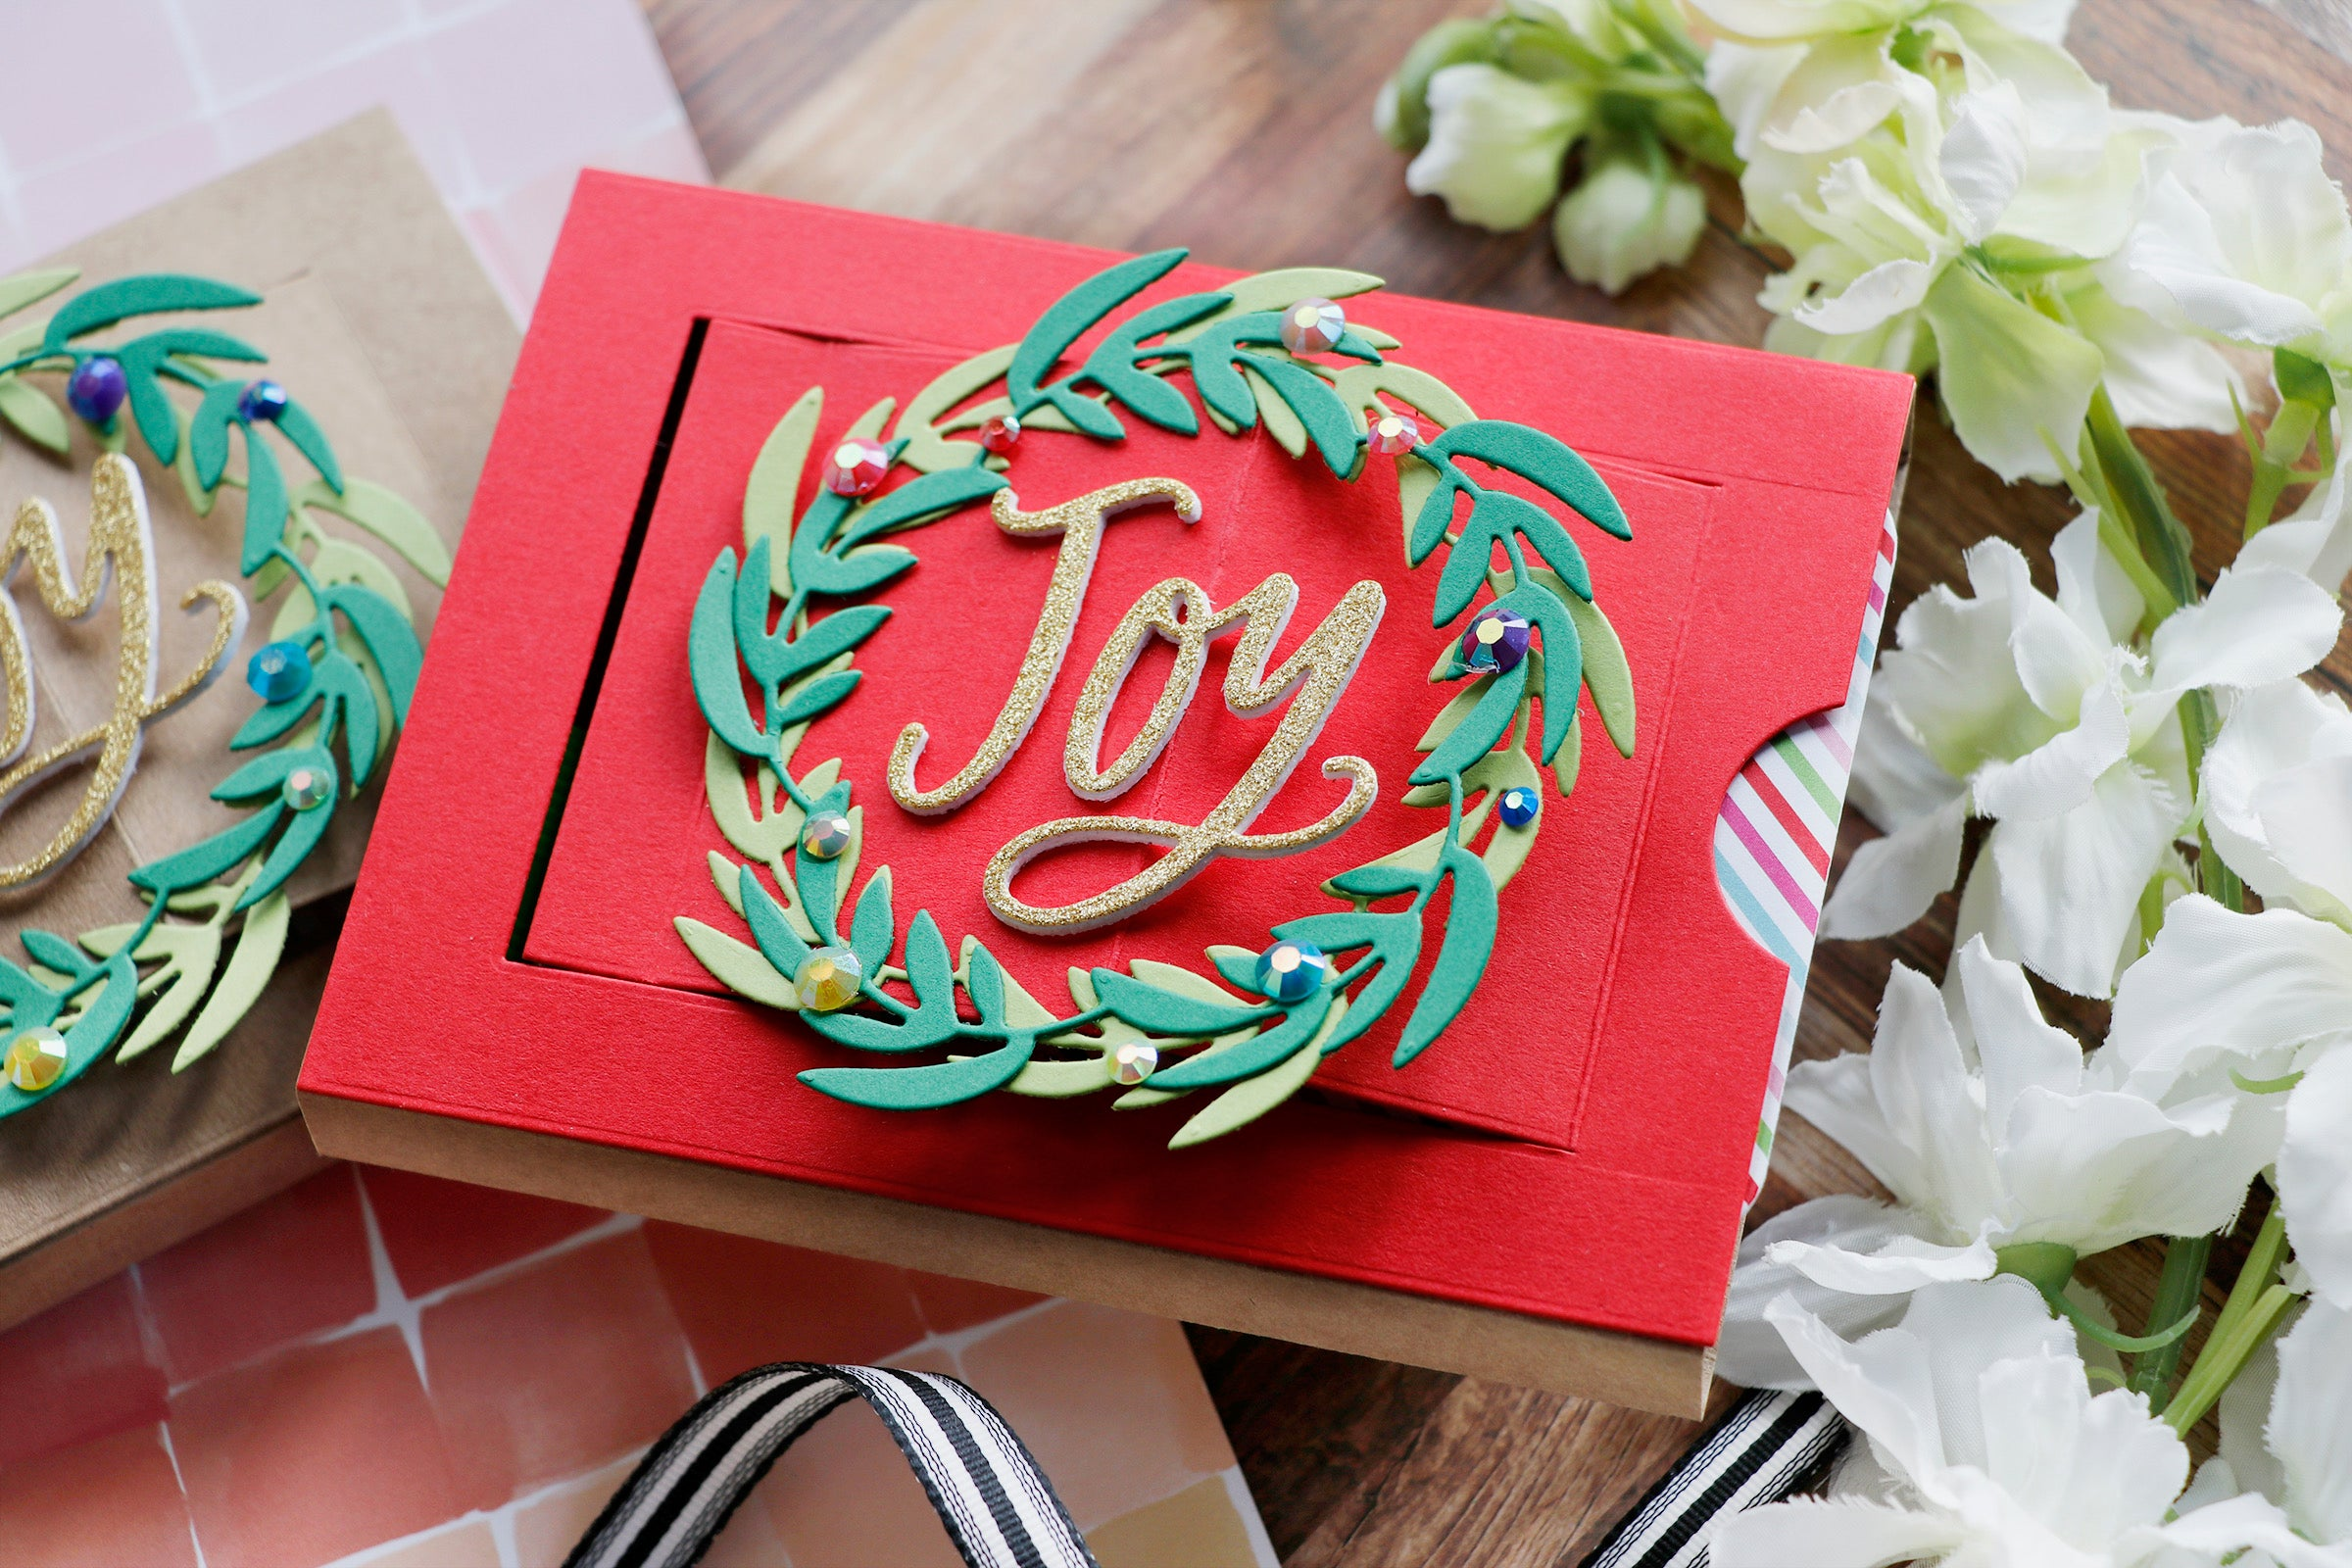 Handmade #stockingstuffer from Laura Bassen featuring products from My Favorite Things #mftstamps #christmascraft